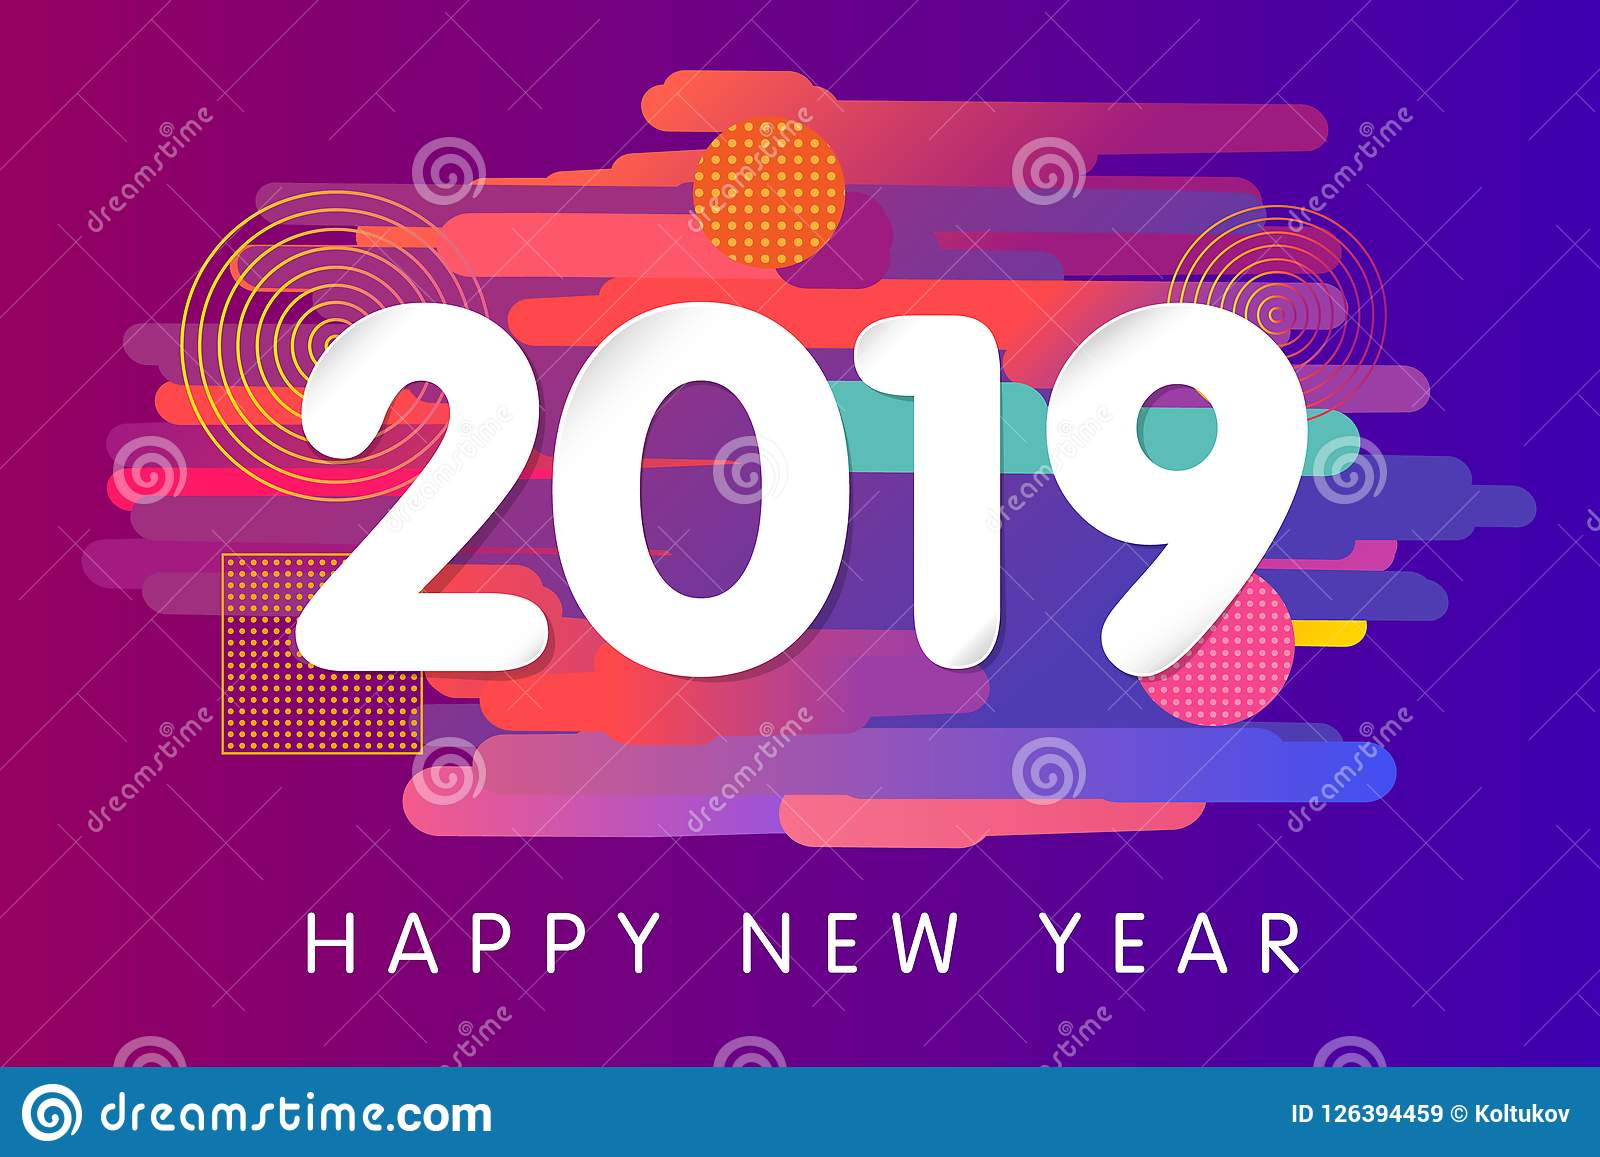 2019 Happy New Year Card Design Stock Vector Illustration Of Card Minimal 126394459